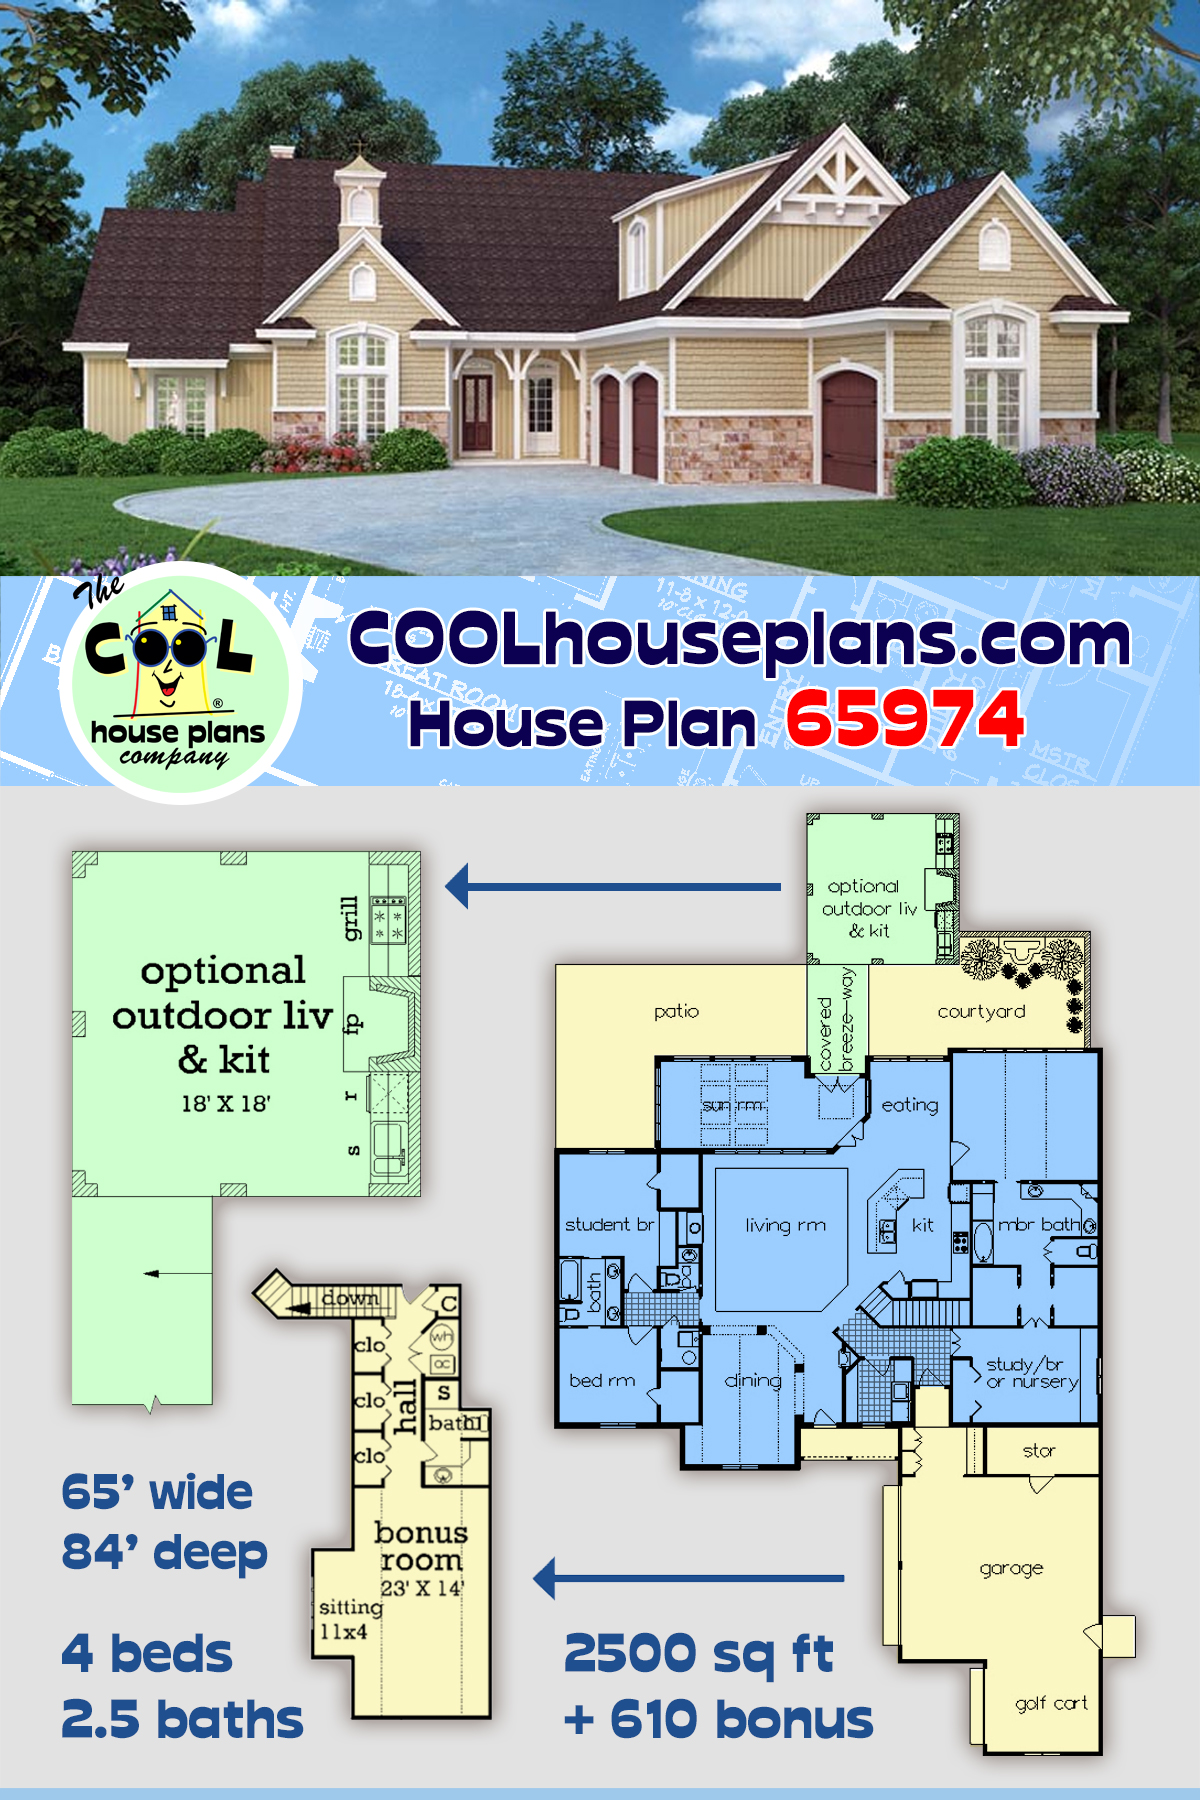 Traditional House Plan 65974 with 4 Beds, 3 Baths, 2 Car Garage